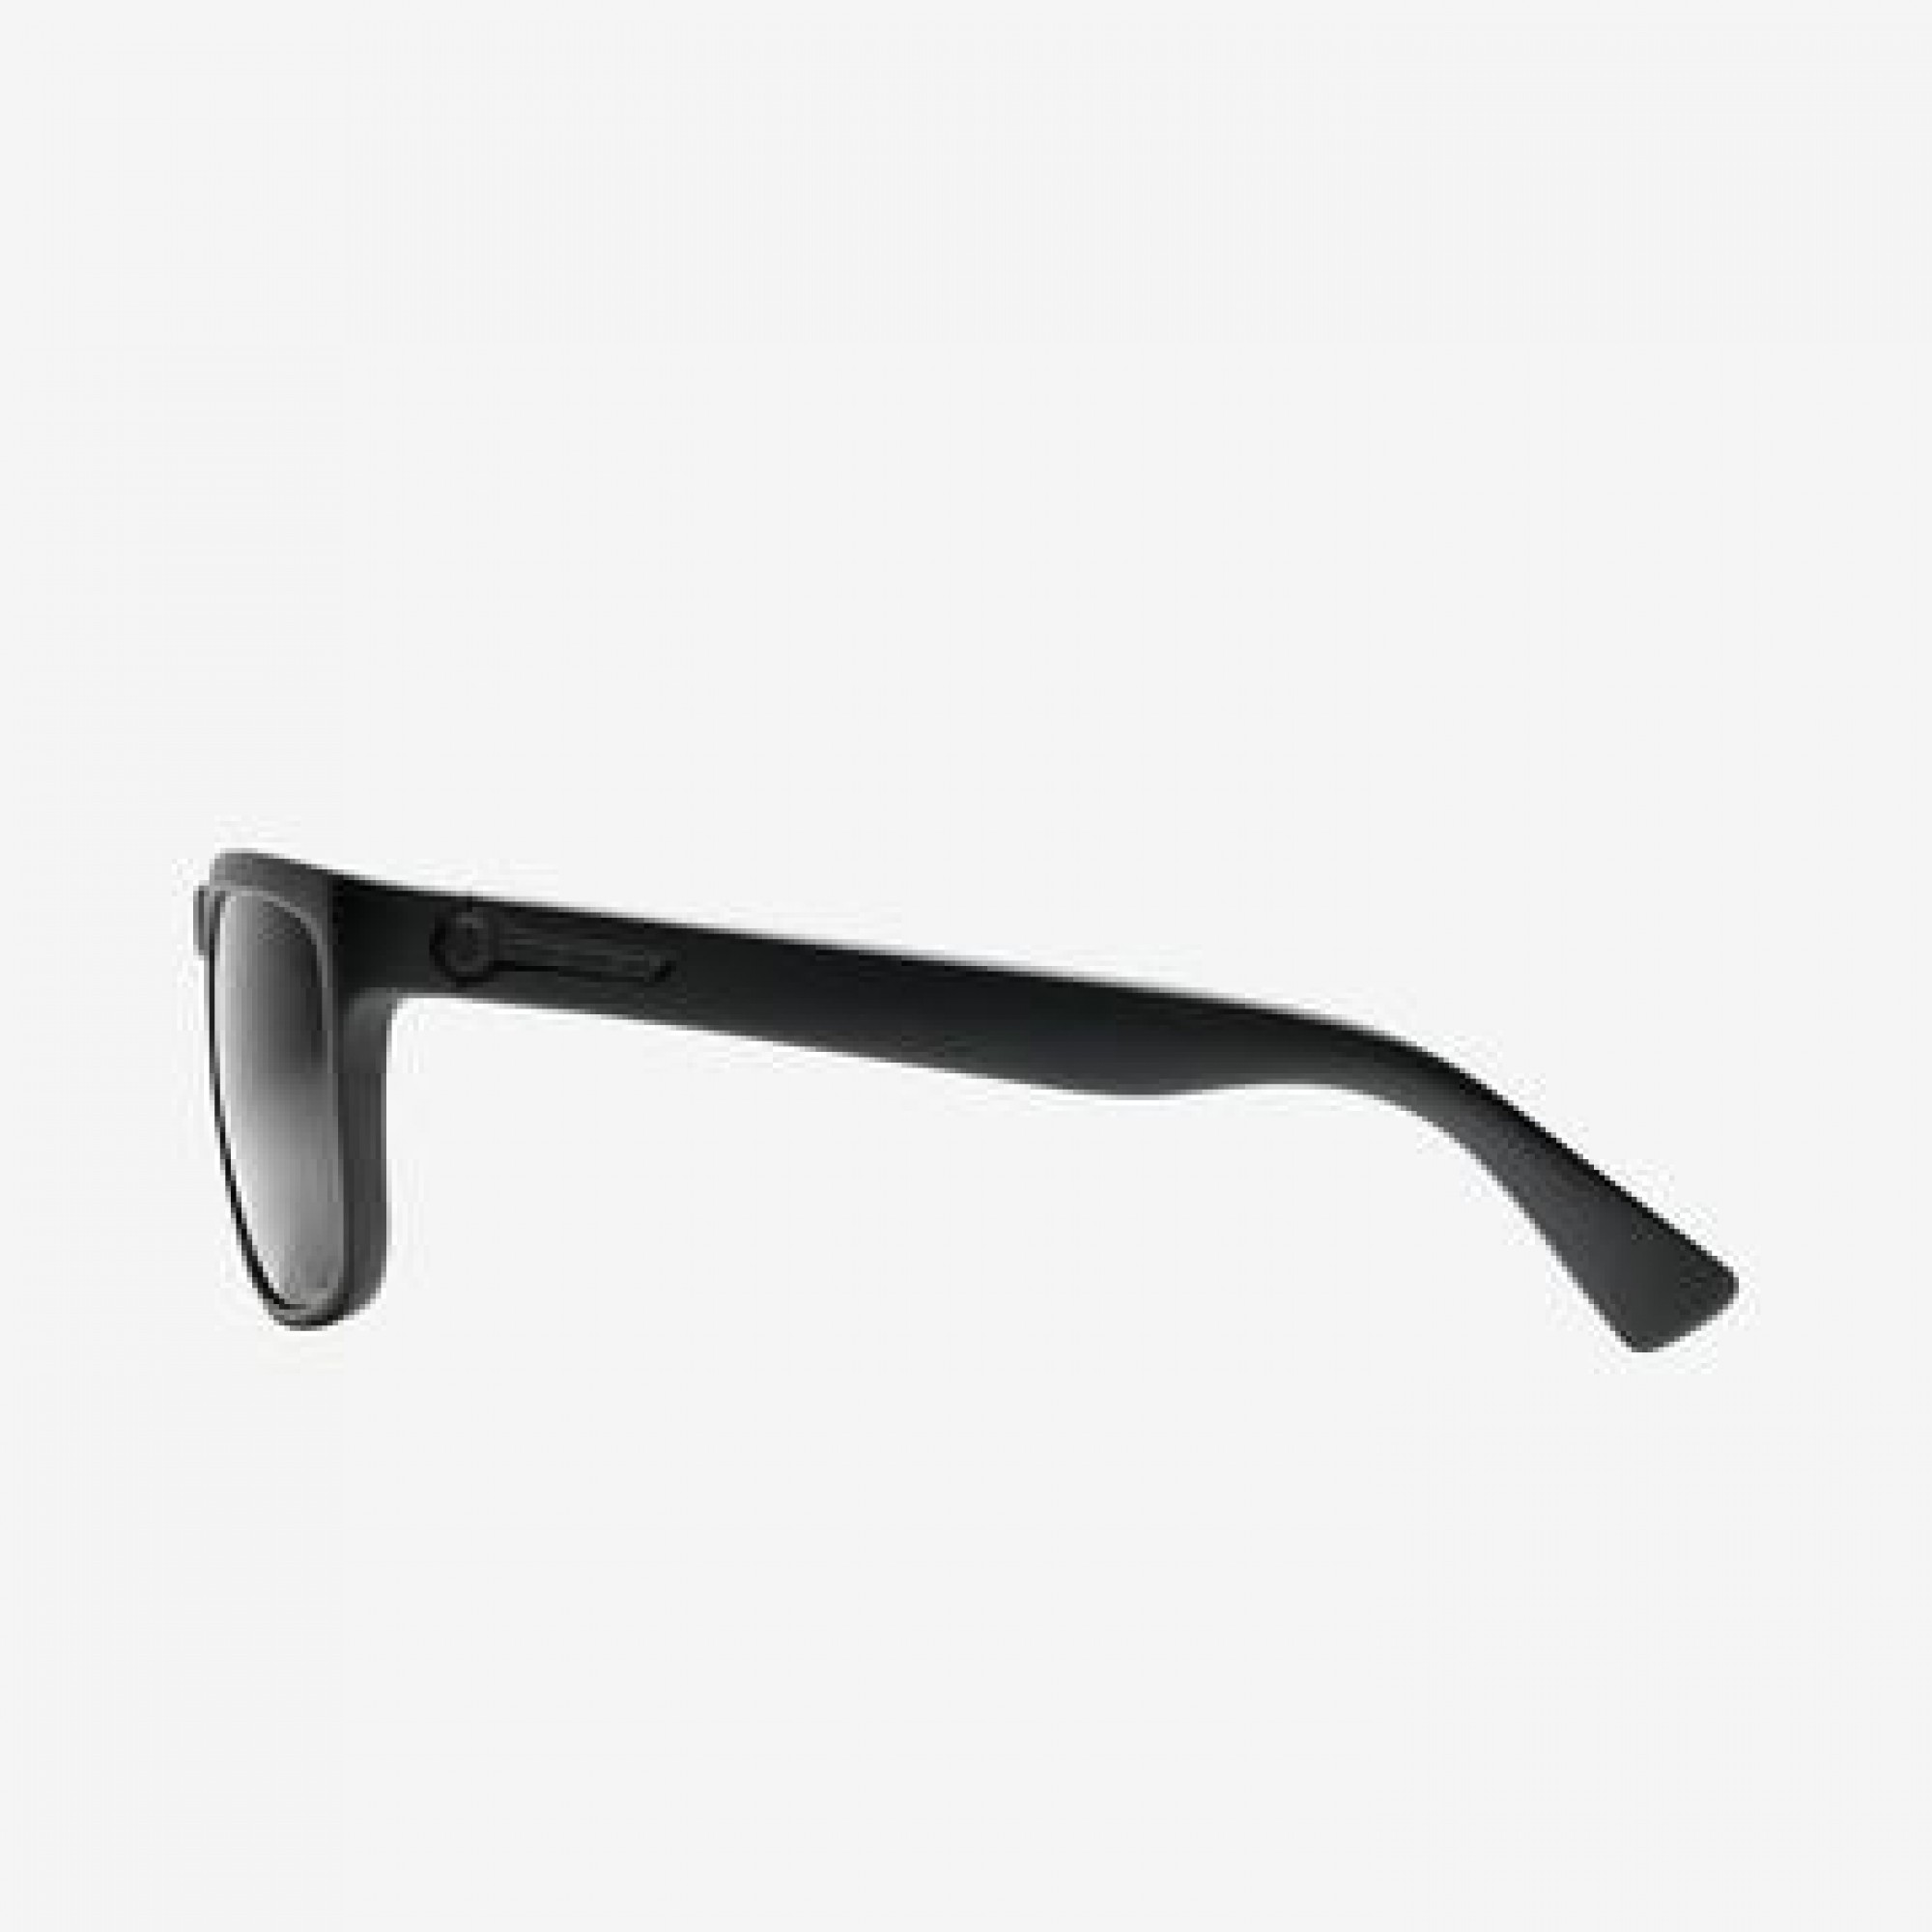 fad609a266 Venue Store ELECTRIC Knoxville Polarized Sunglasses - Matte Black OHM Grey  Free Delivery Over  100